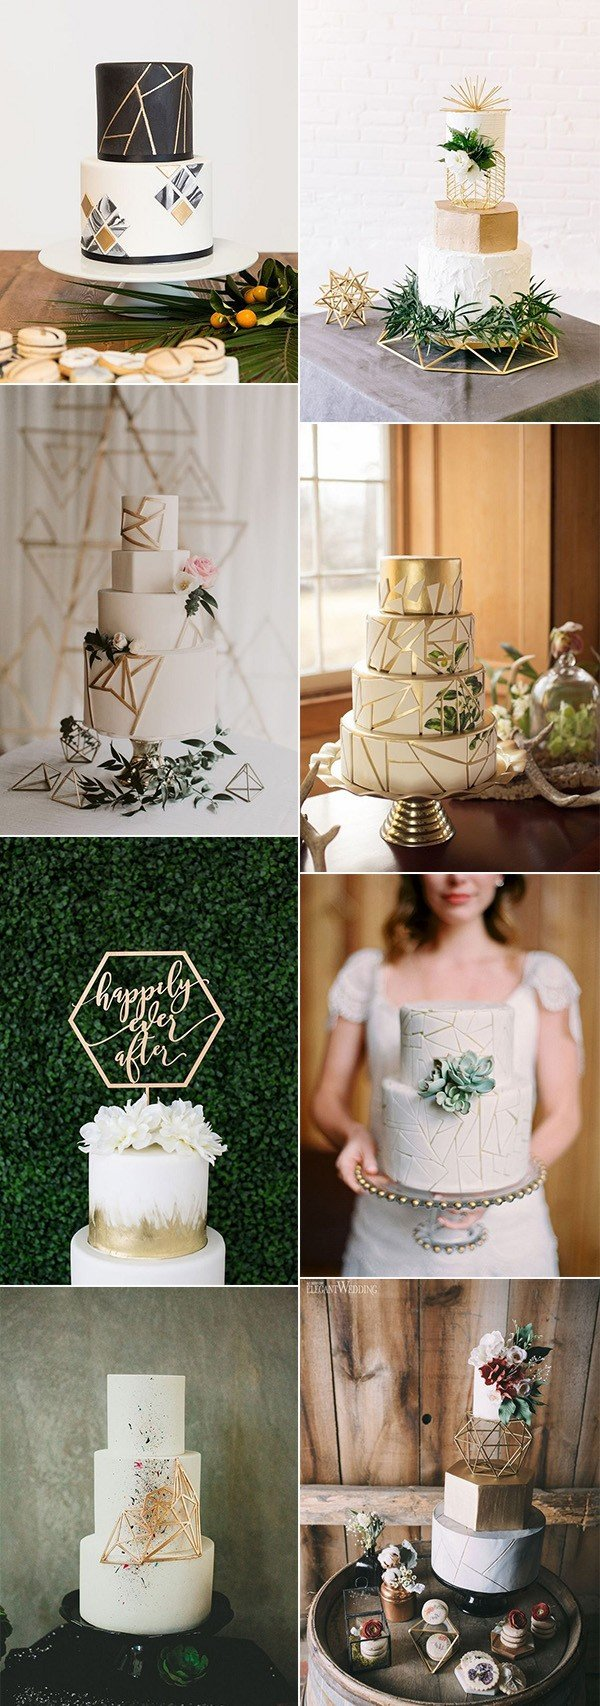 chic geometric wedding cakes